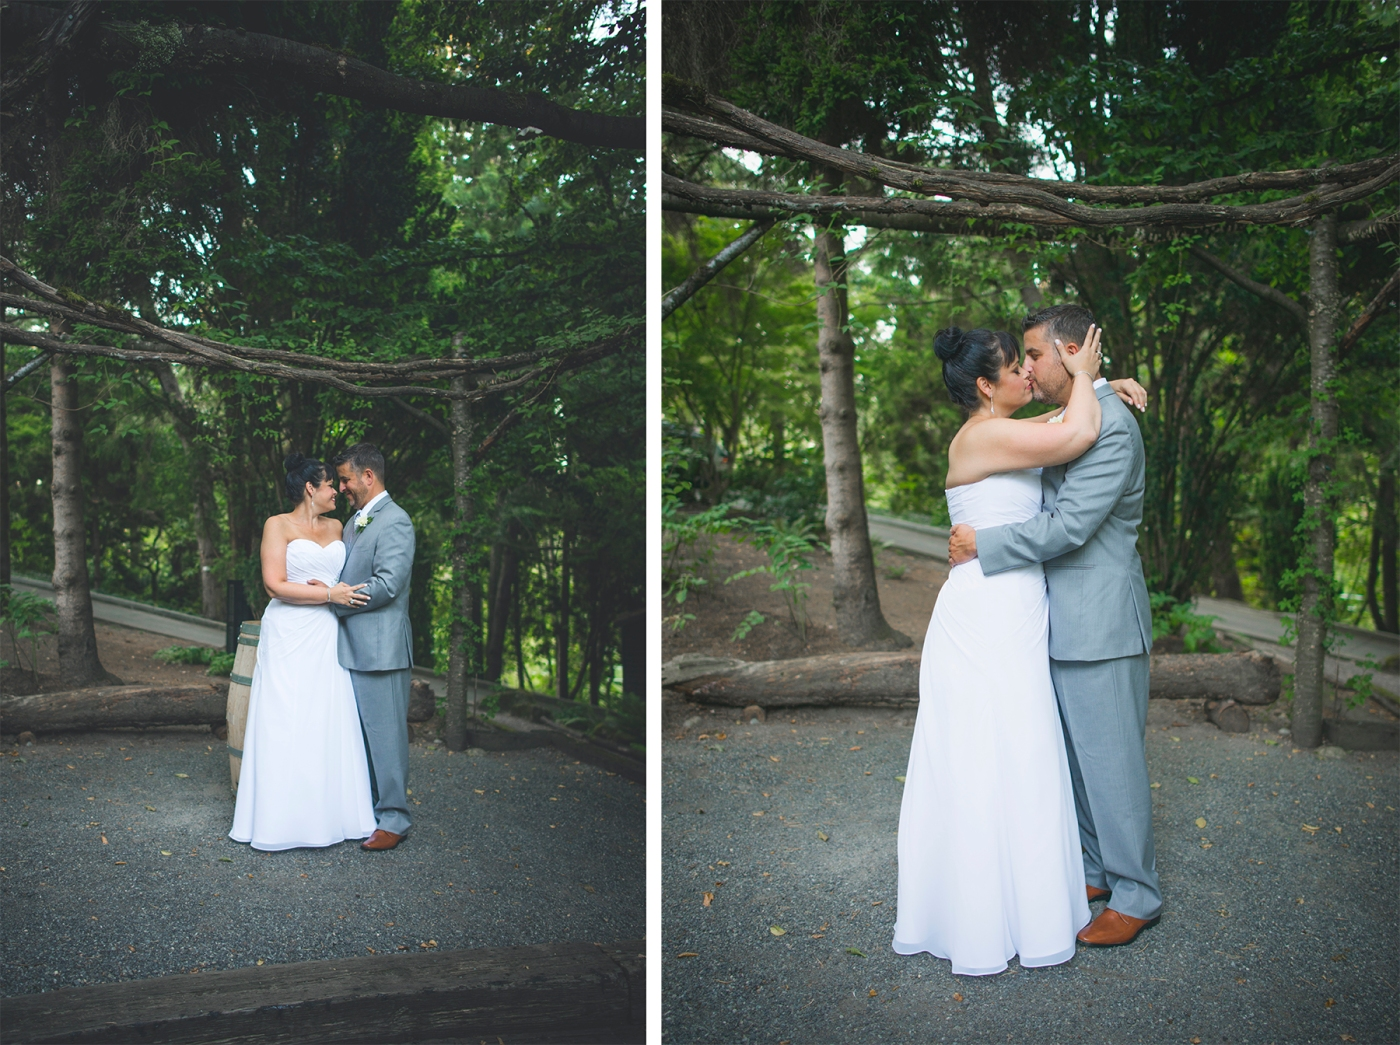 ang_matt_jm_woodinville_2016_js_photography_weddingdsc_3101-copy